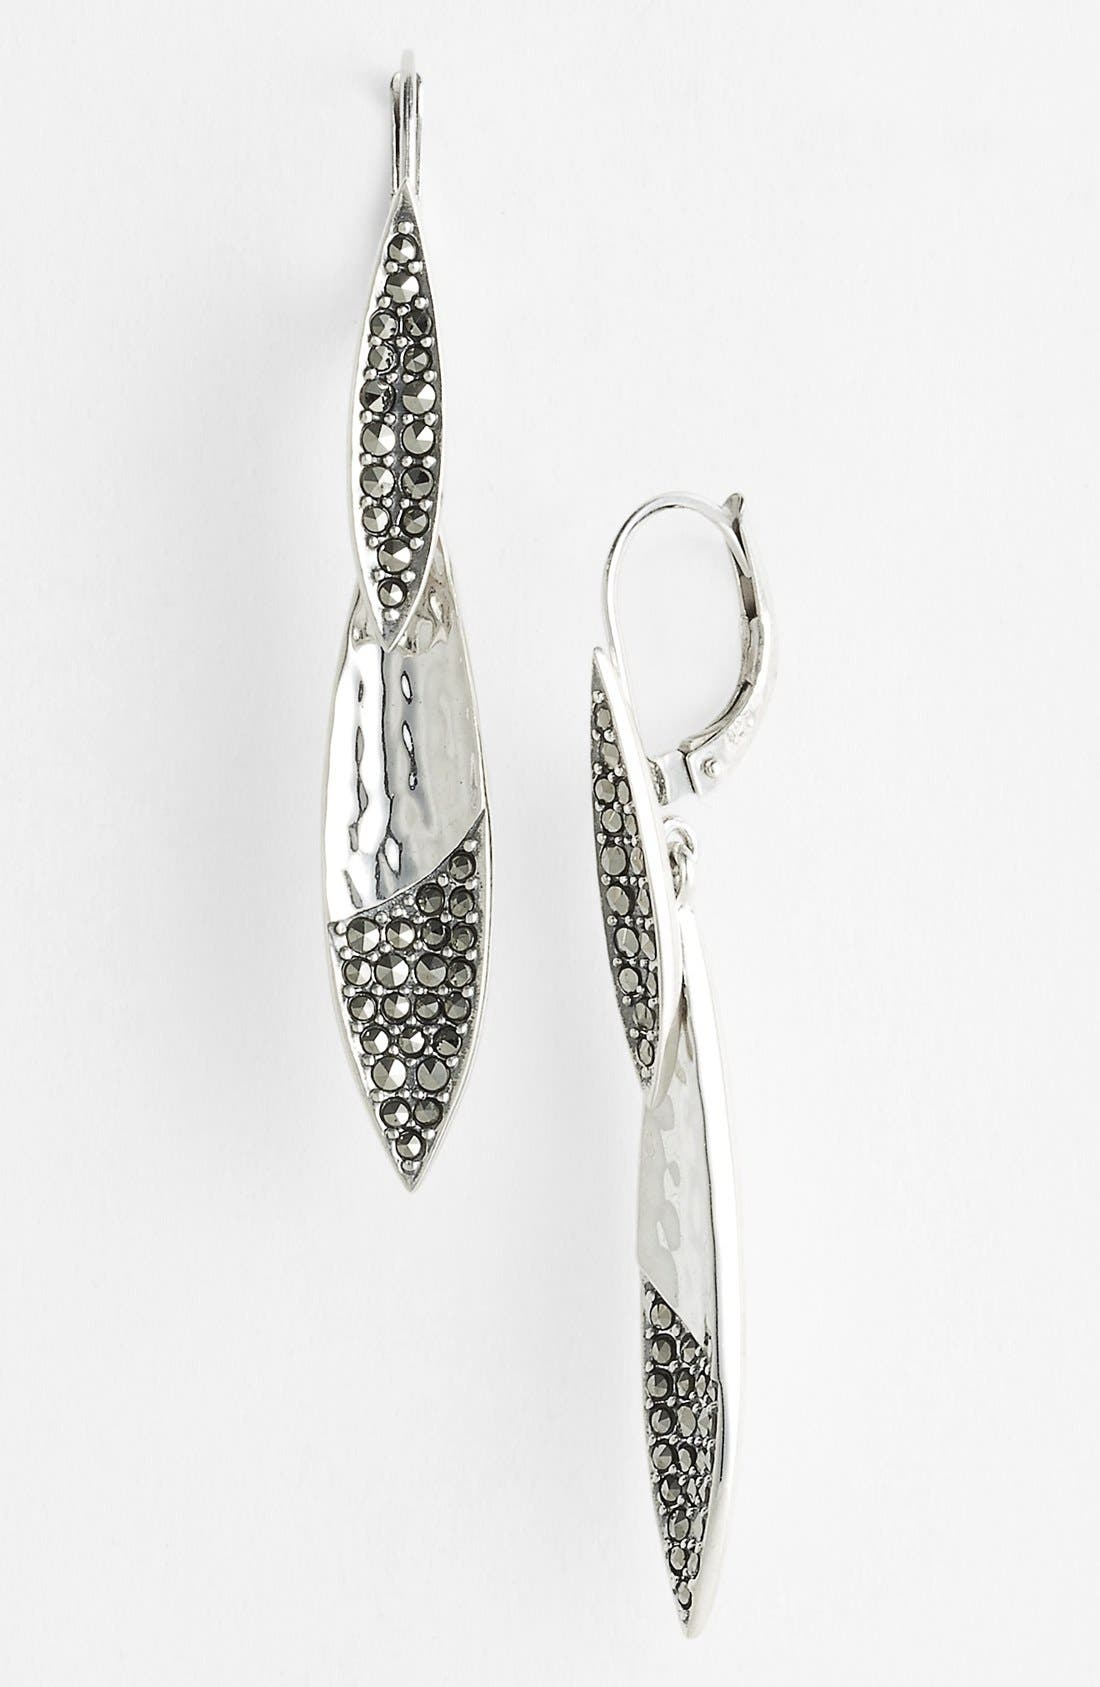 Alternate Image 1 Selected - Judith Jack 'Silver Rain' Double Drop Earrings (Nordstrom Exclusive)